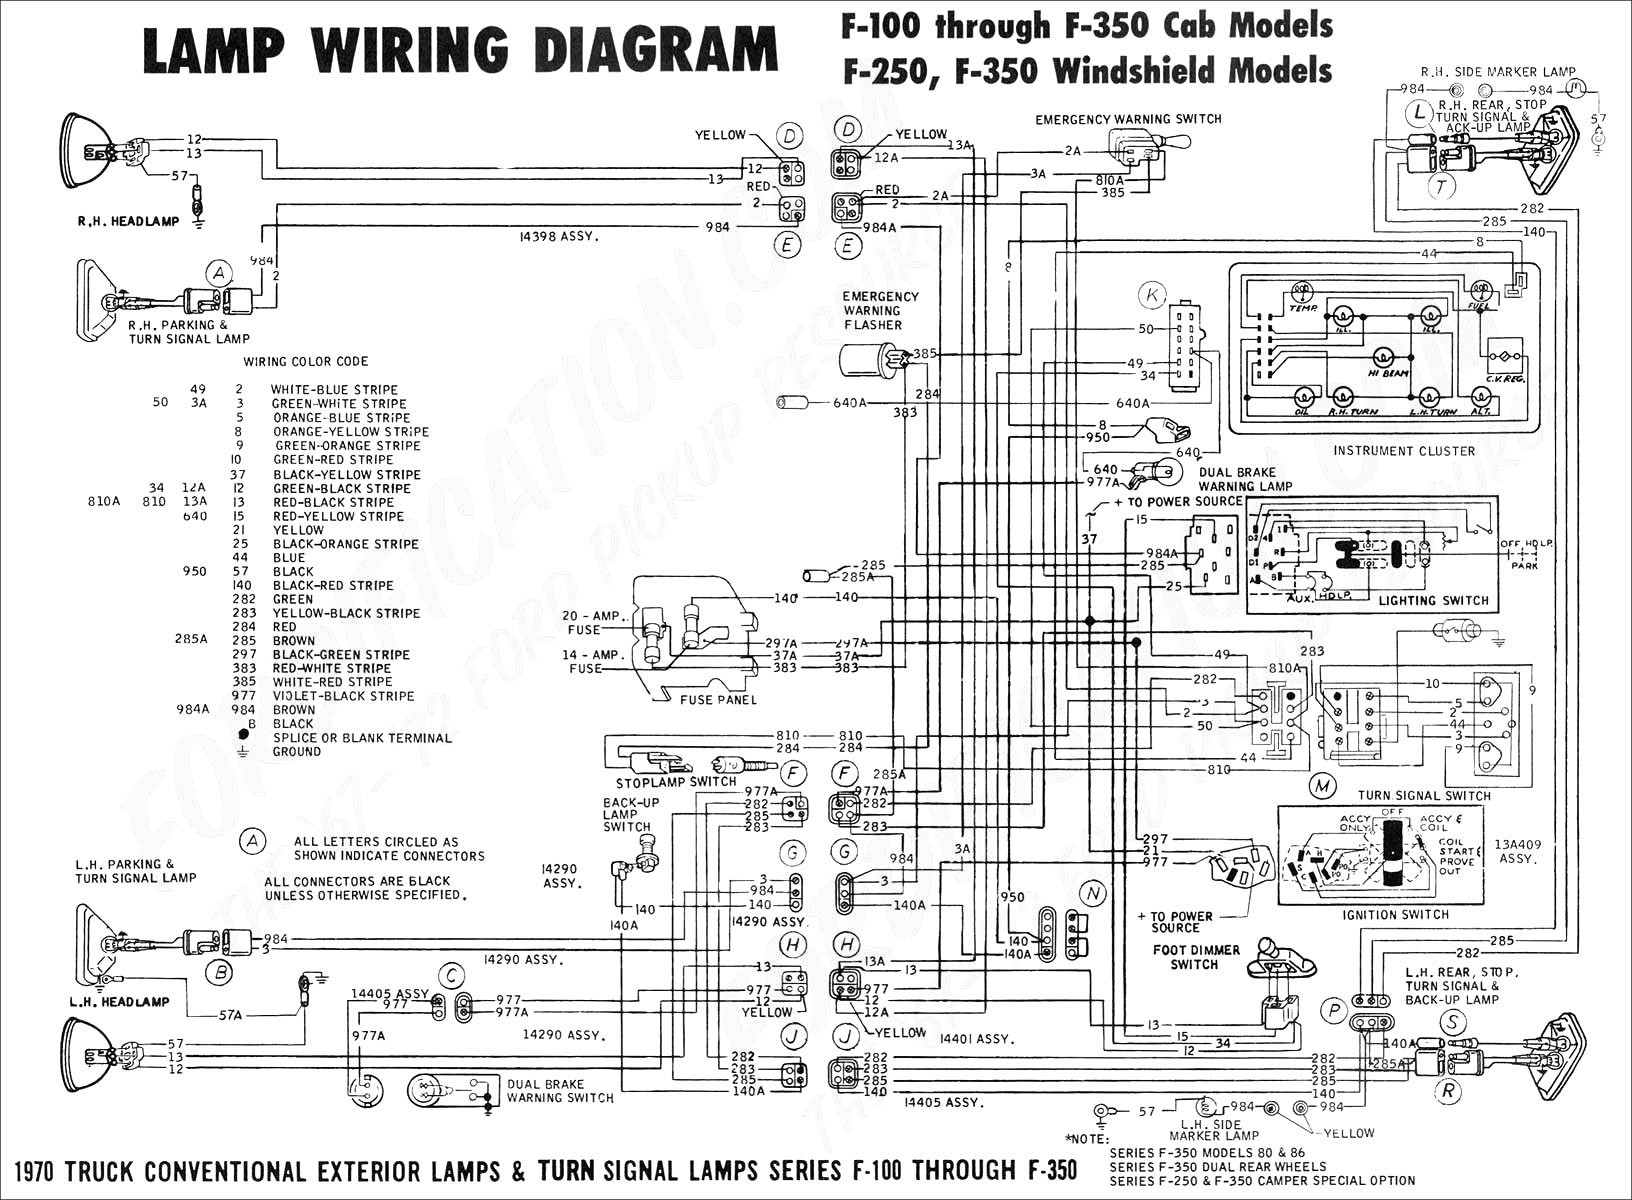 2009 Ford E350 Wiring Diagram from mainetreasurechest.com